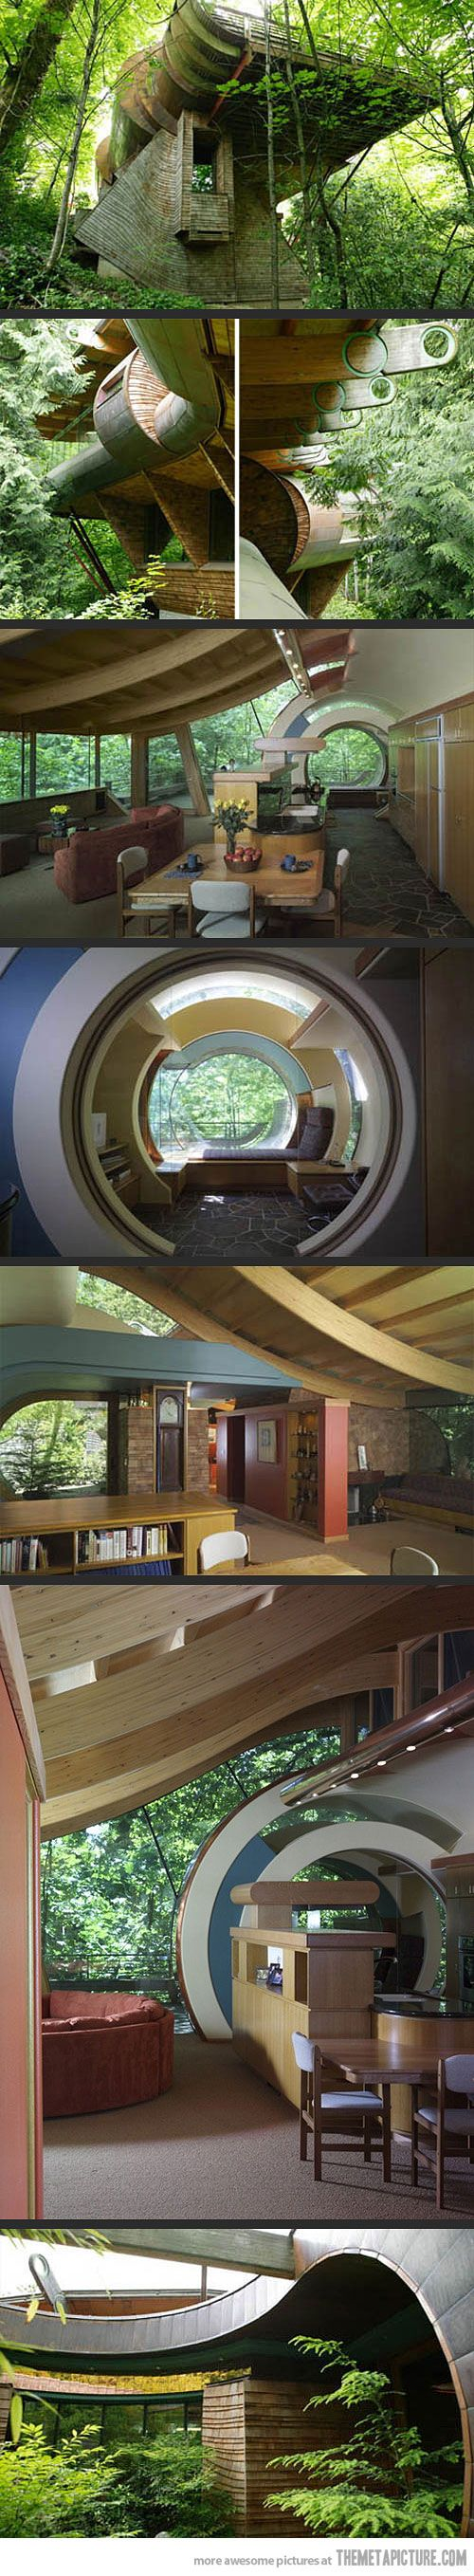 Architect Robert Oshatz's house in Portland, Oregon